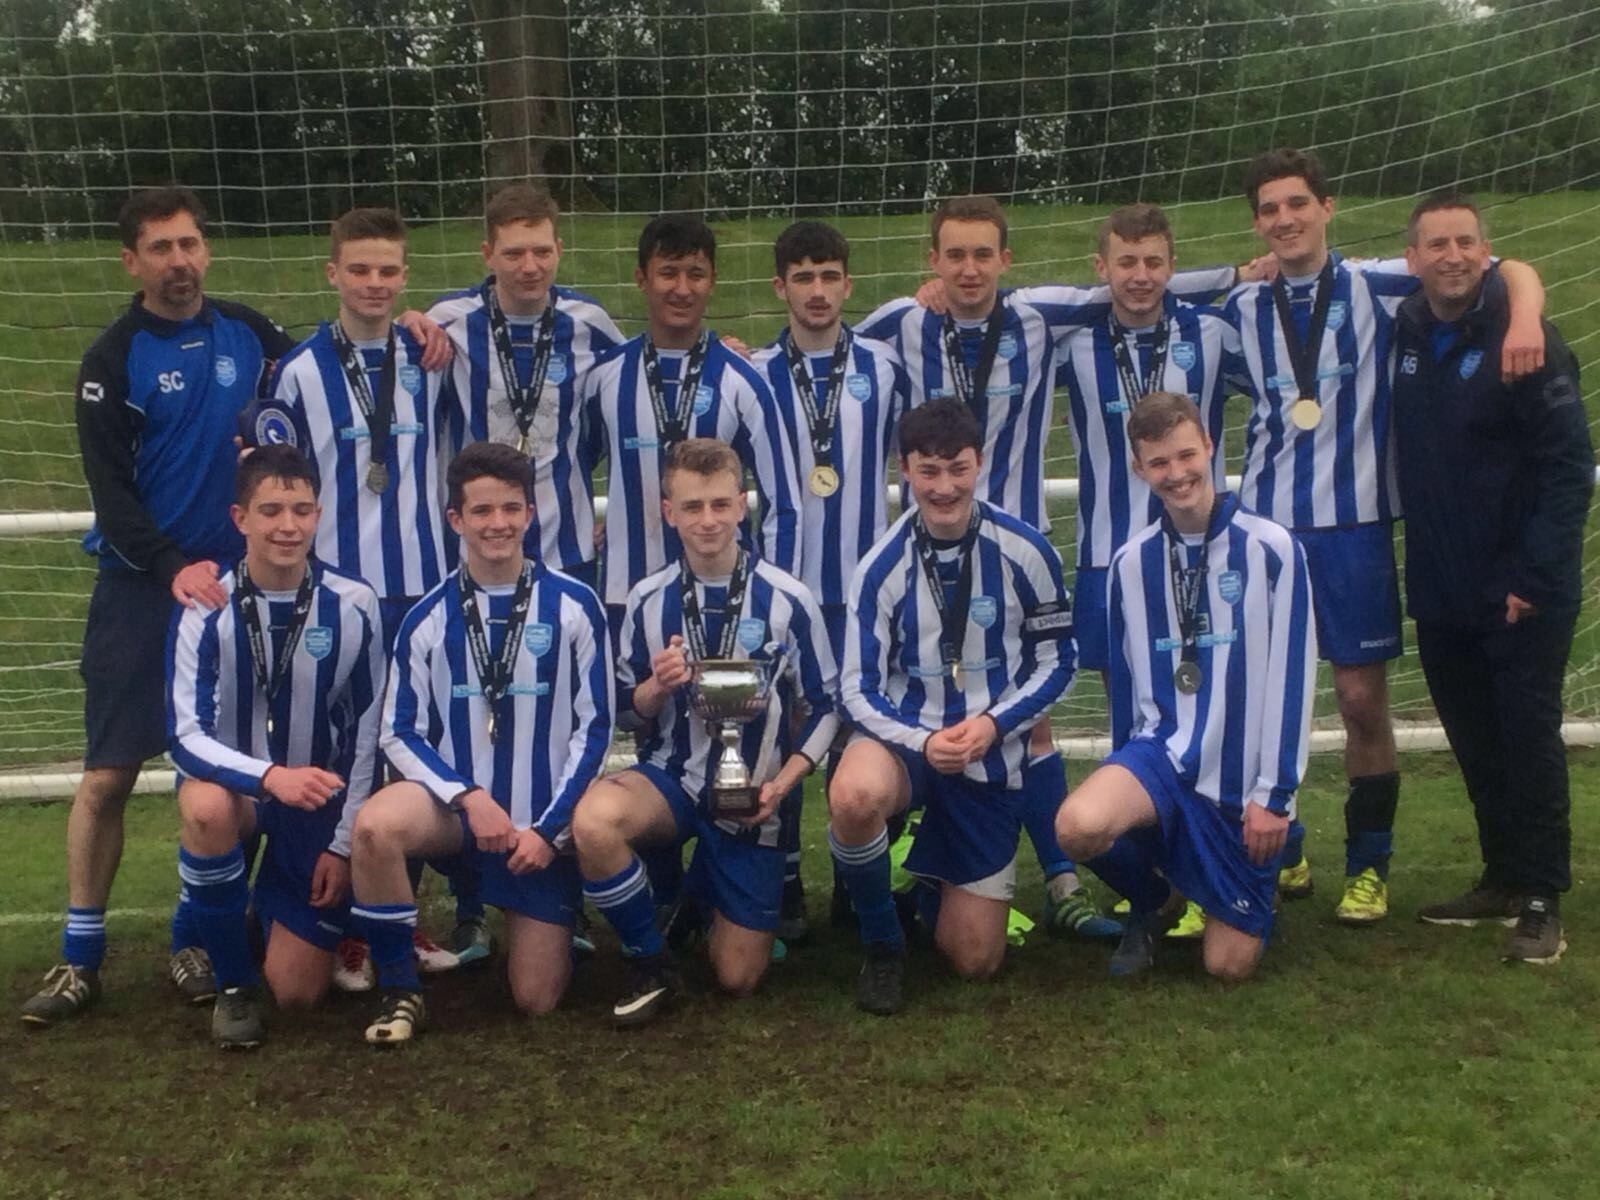 U18s Blues take home the U18 League Challenge Cup!